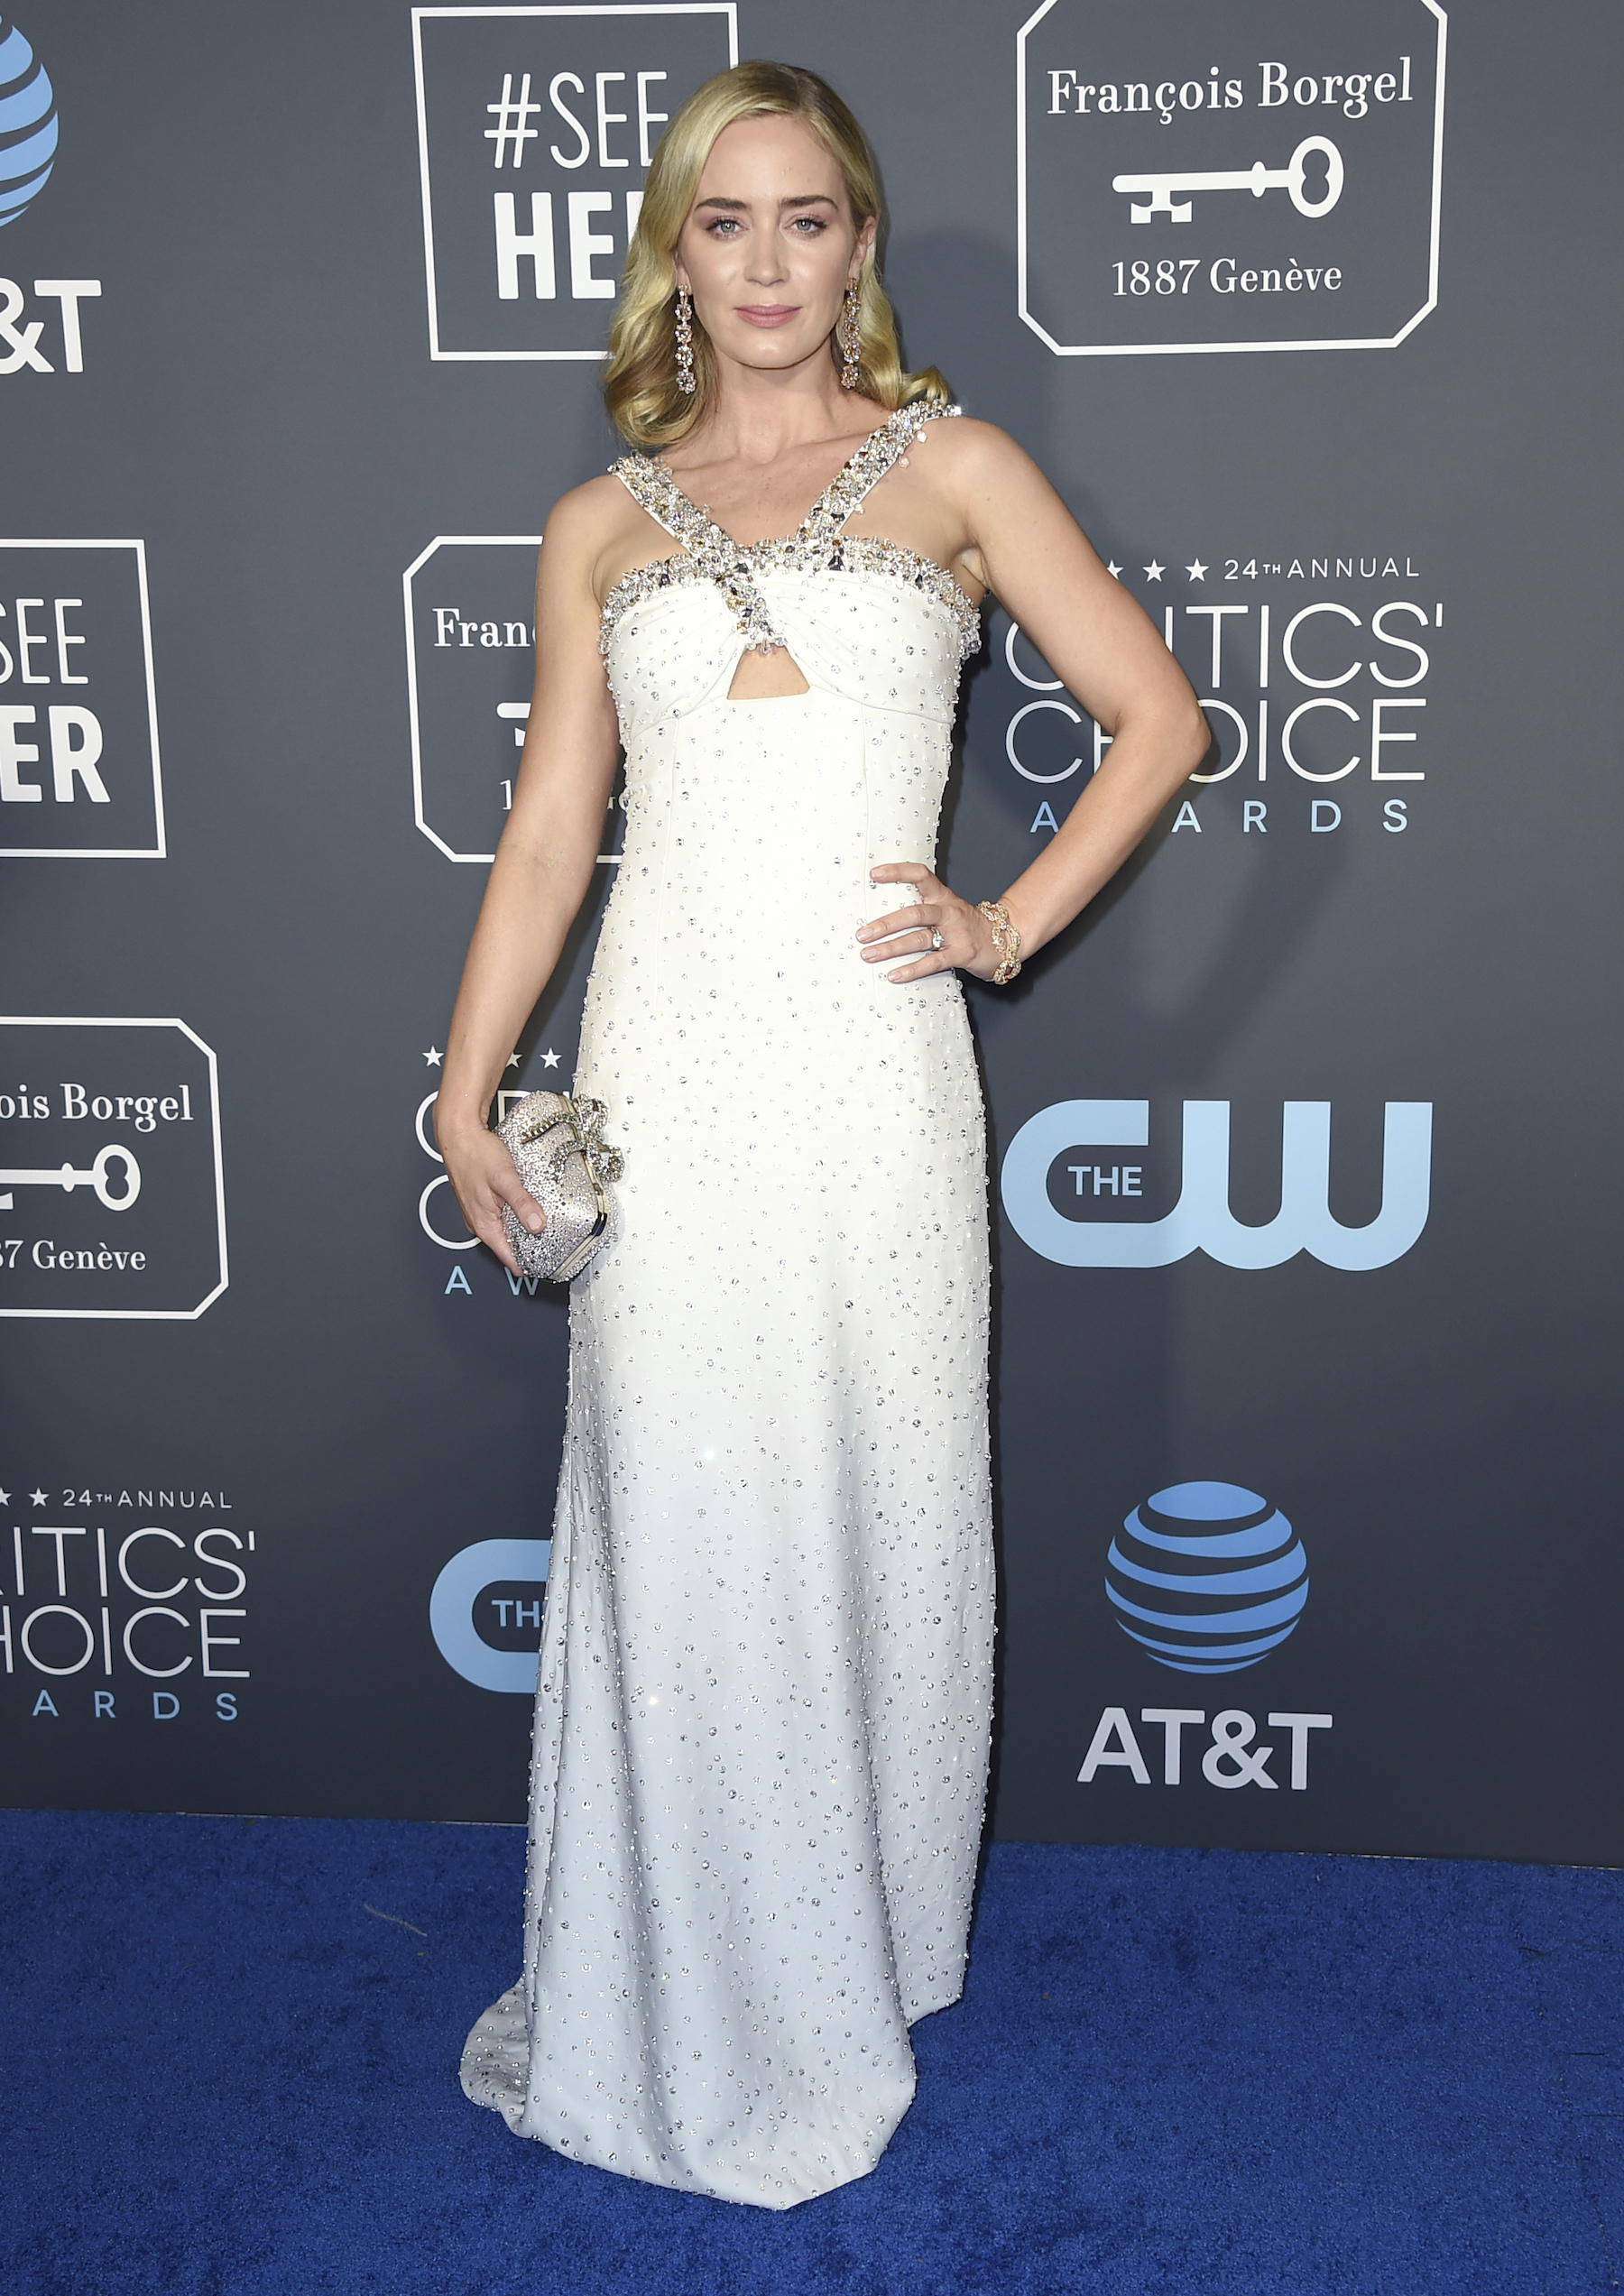 "<div class=""meta image-caption""><div class=""origin-logo origin-image ap""><span>AP</span></div><span class=""caption-text"">Emily Blunt arrives at the 24th annual Critics' Choice Awards on Sunday, Jan. 13, 2019, at the Barker Hangar in Santa Monica, Calif. (Jordan Strauss/Invision/AP)</span></div>"